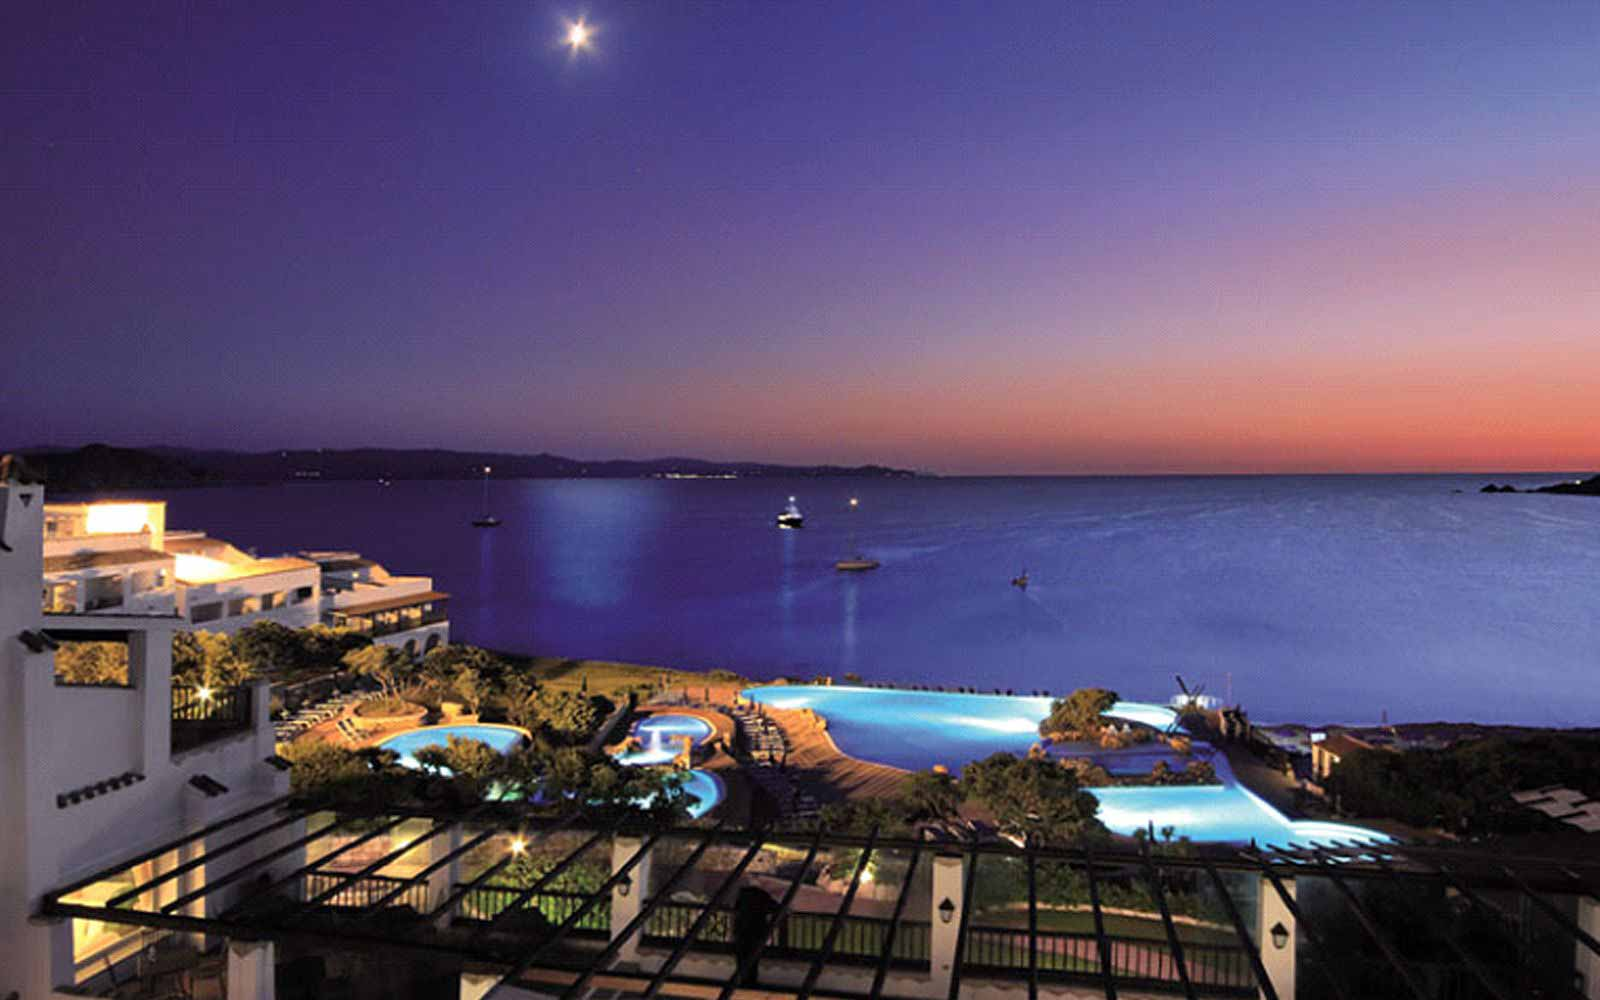 Night view at the Colonna Grand Hotel Capo Testa